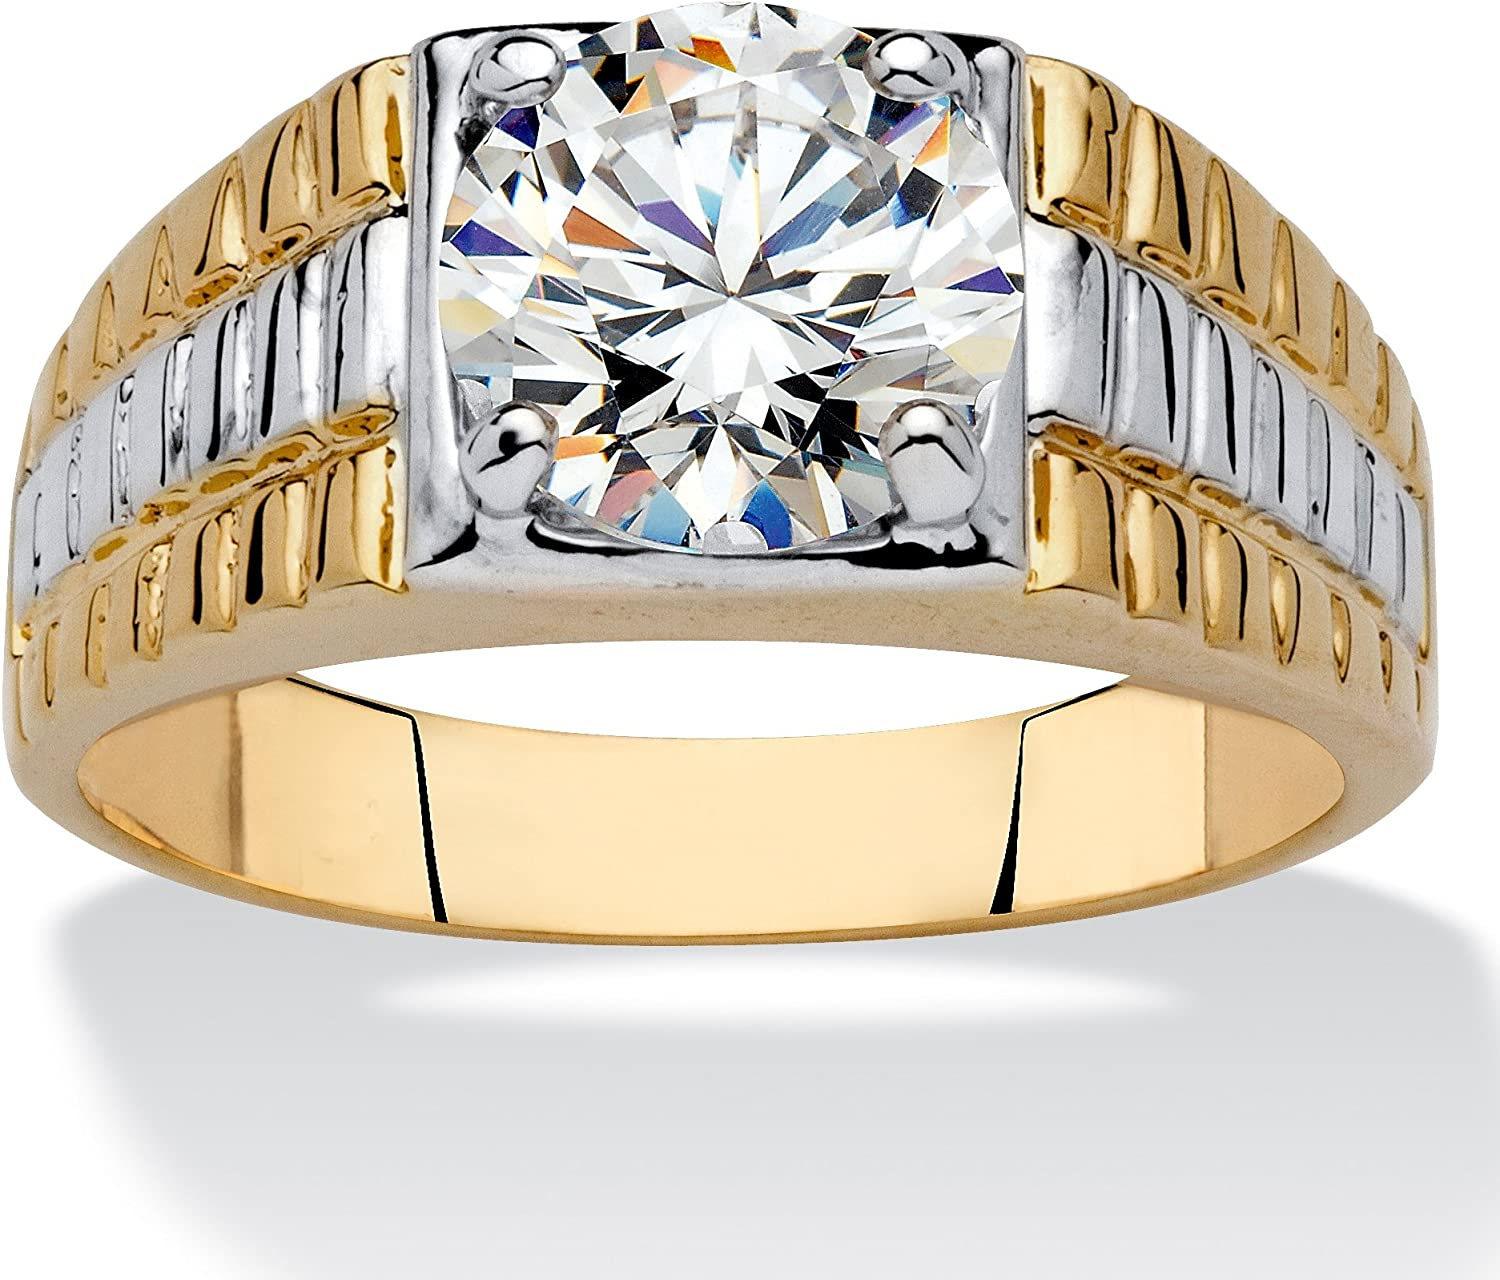 Palm Beach Jewelry Men's 14K Yellow Gold Plated Round Cubic Zirconia Two Tone Textured Ring